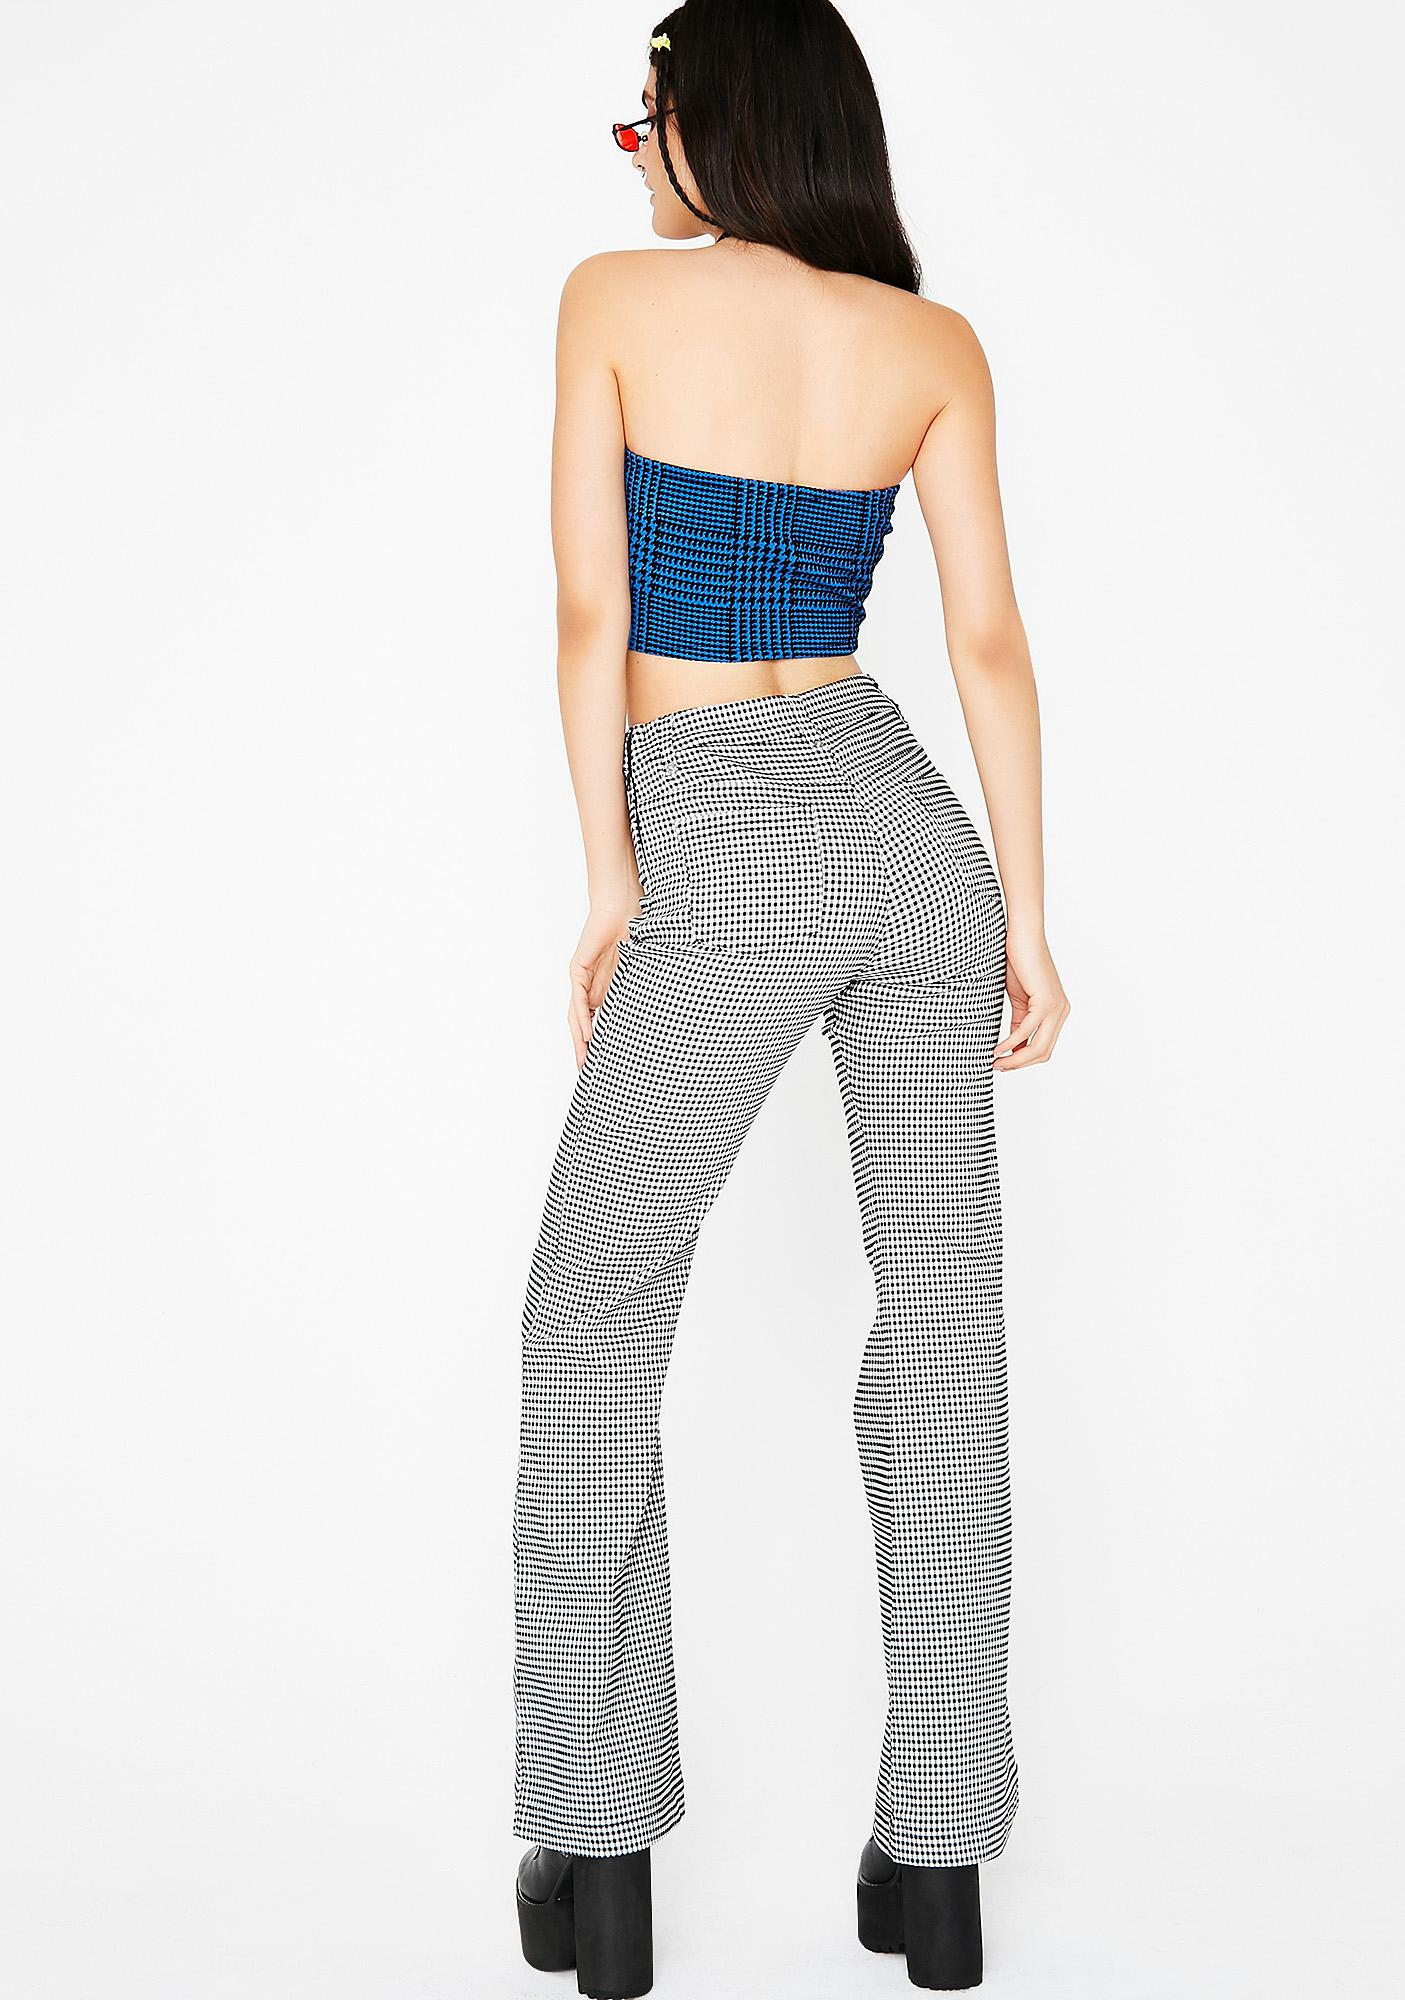 Risky Business Gingham Pants